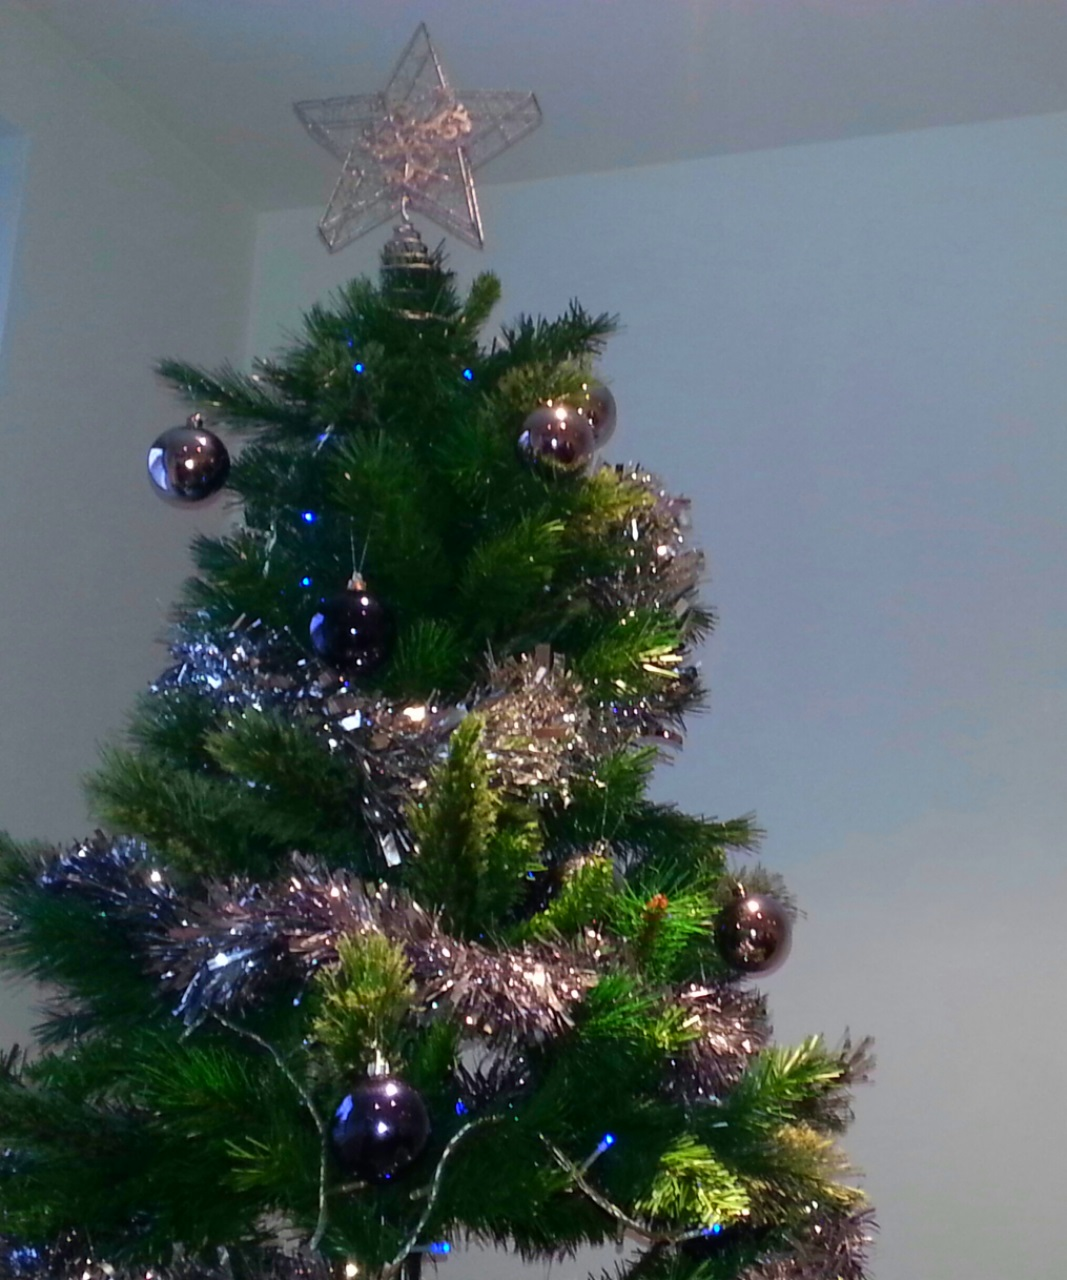 A decorated Christmas tree, topped with a star